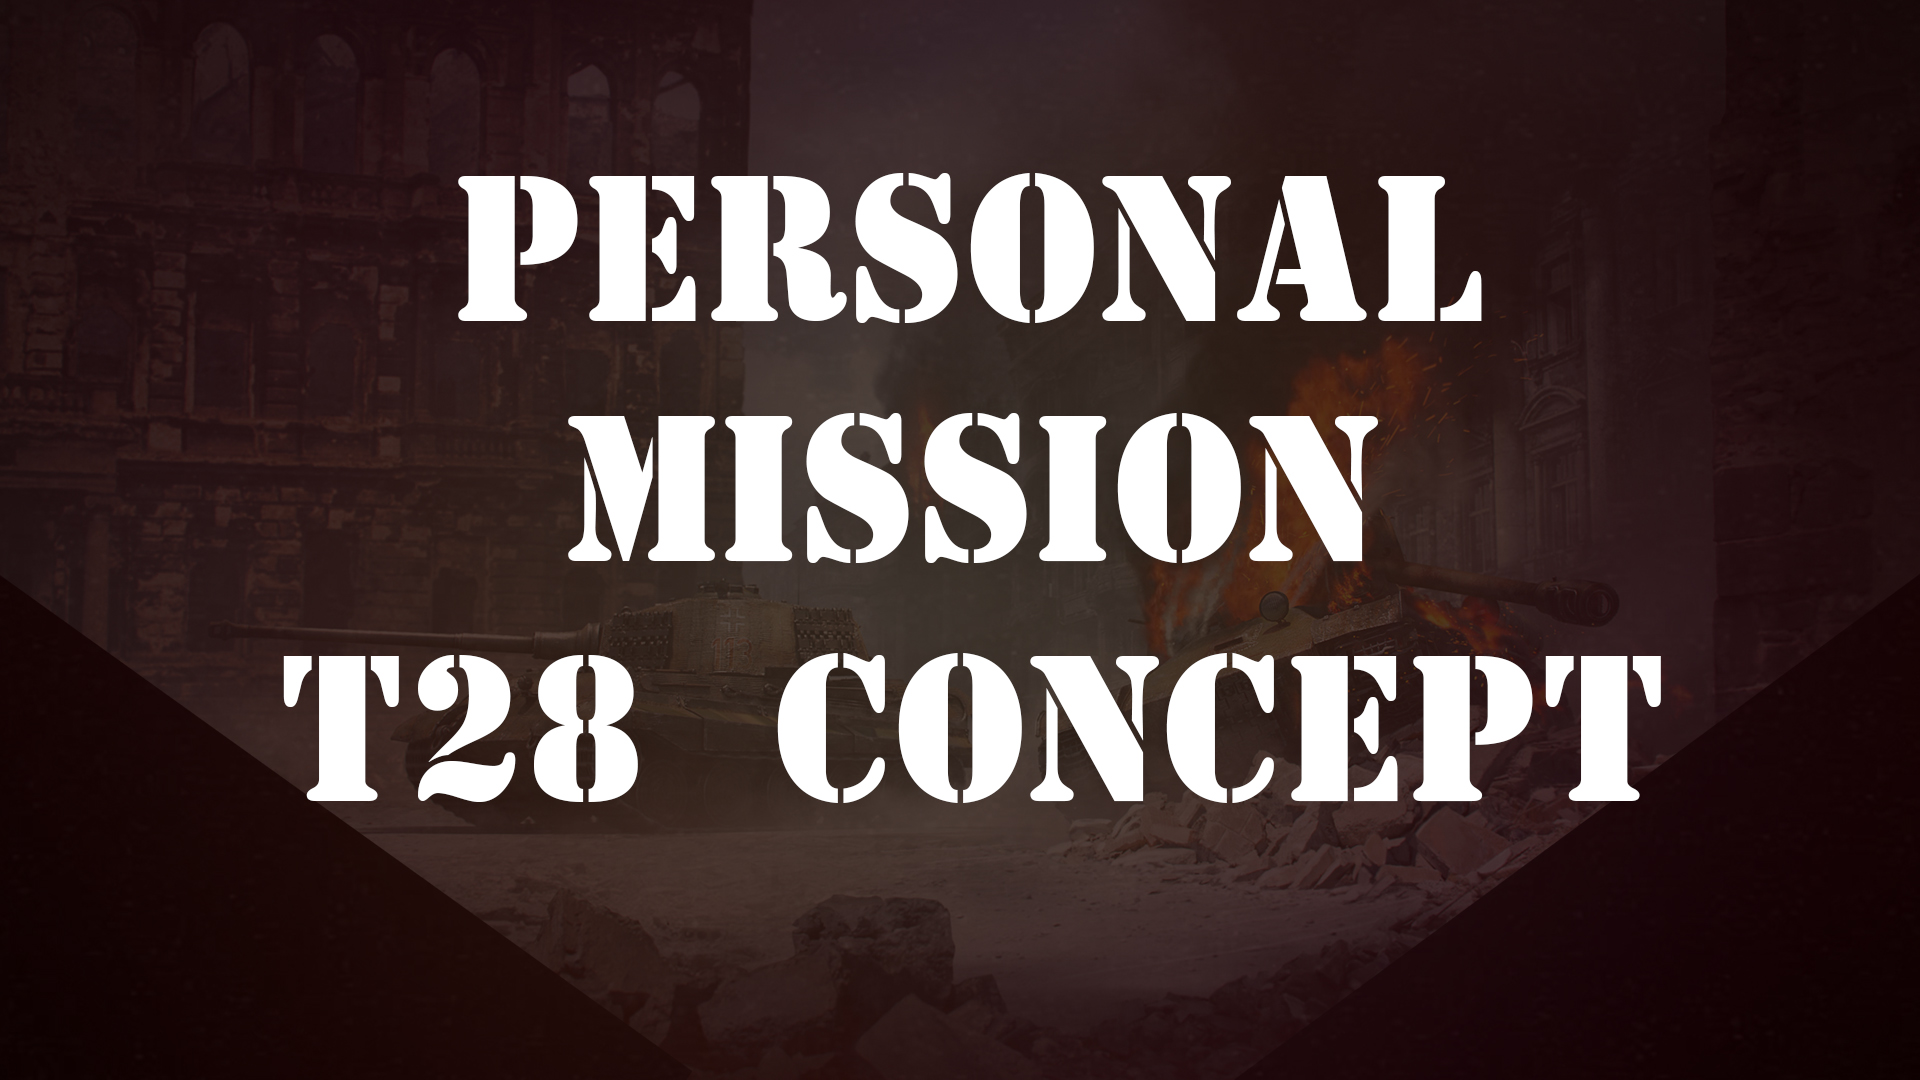 Personal mission  T28 Concept